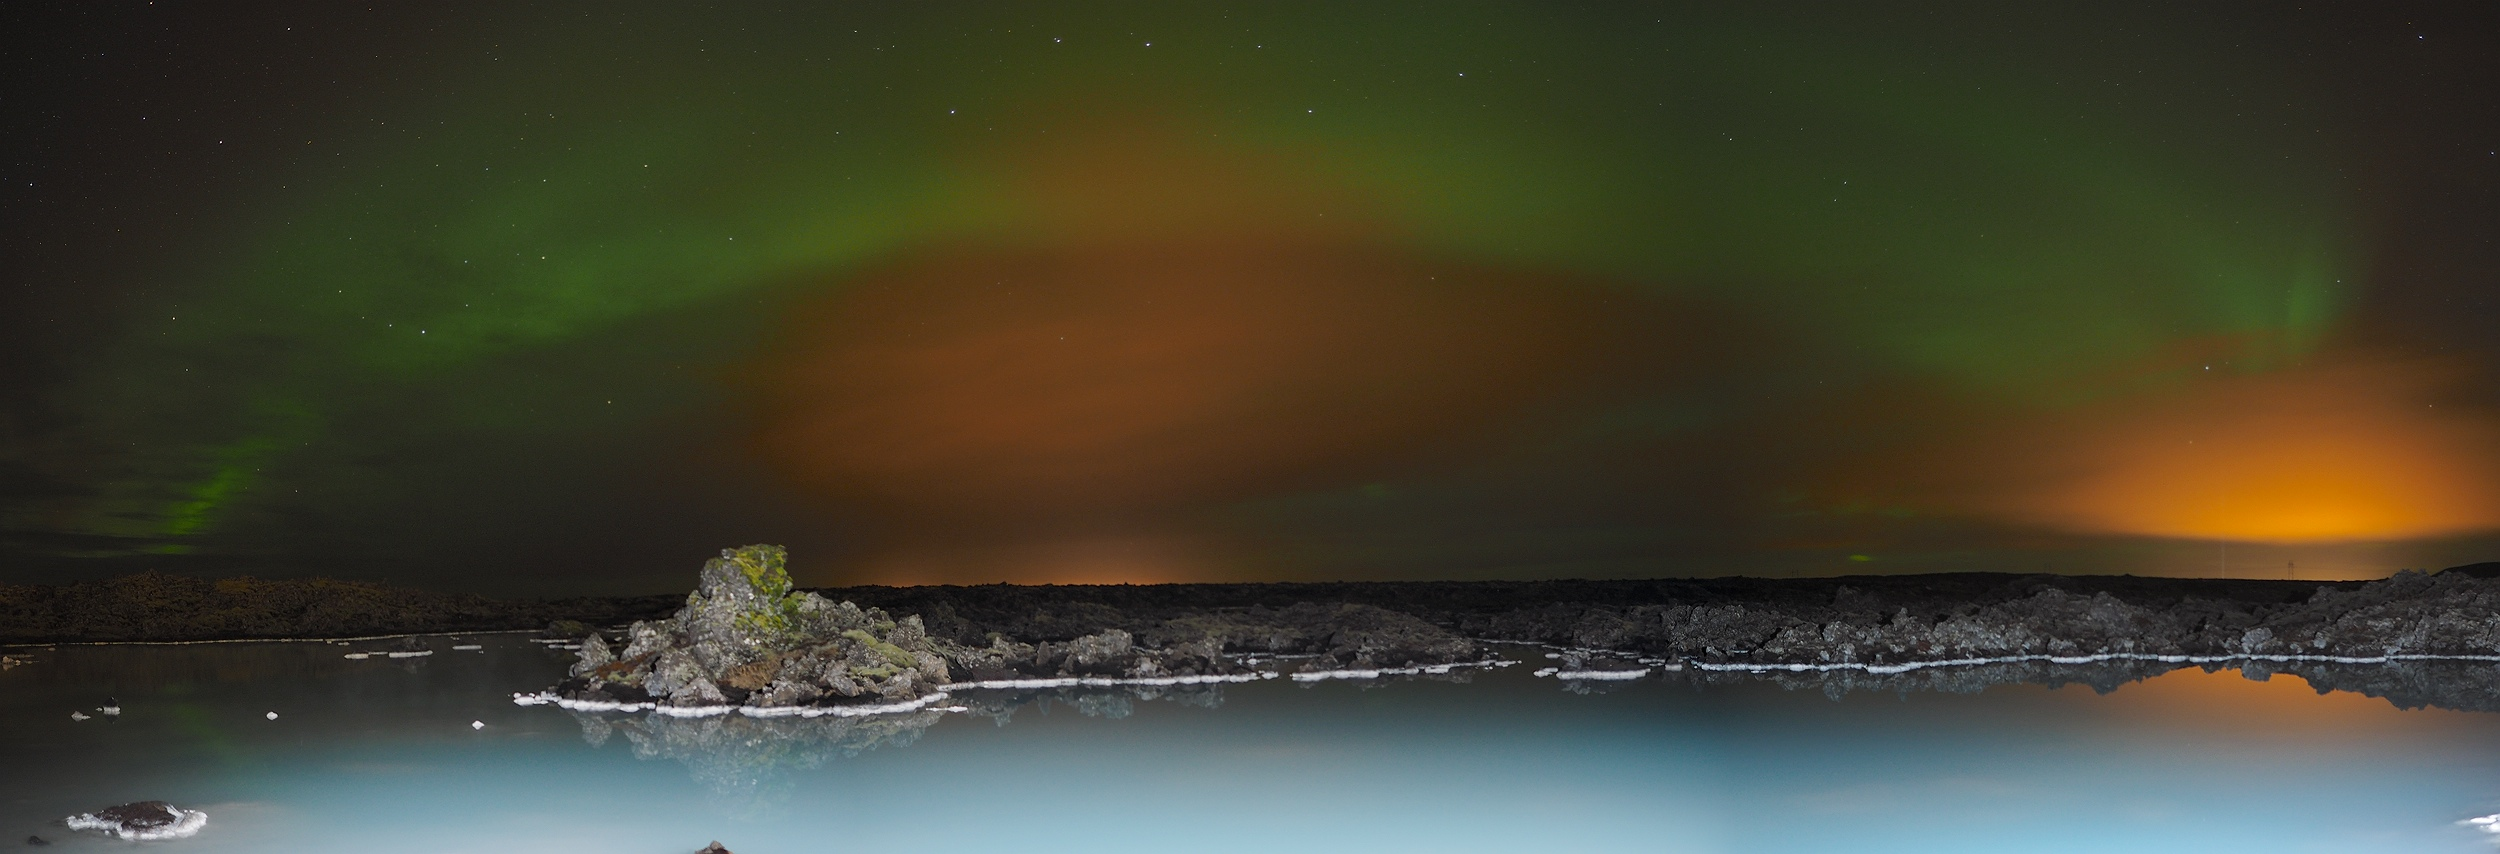 Aurora over Blue Lagoon Geothermal pools. Olympus E-M1, 12mm m4/3 lens. 3 exposures -F2, ISO 400,  13.6s/13.4s/9.8s